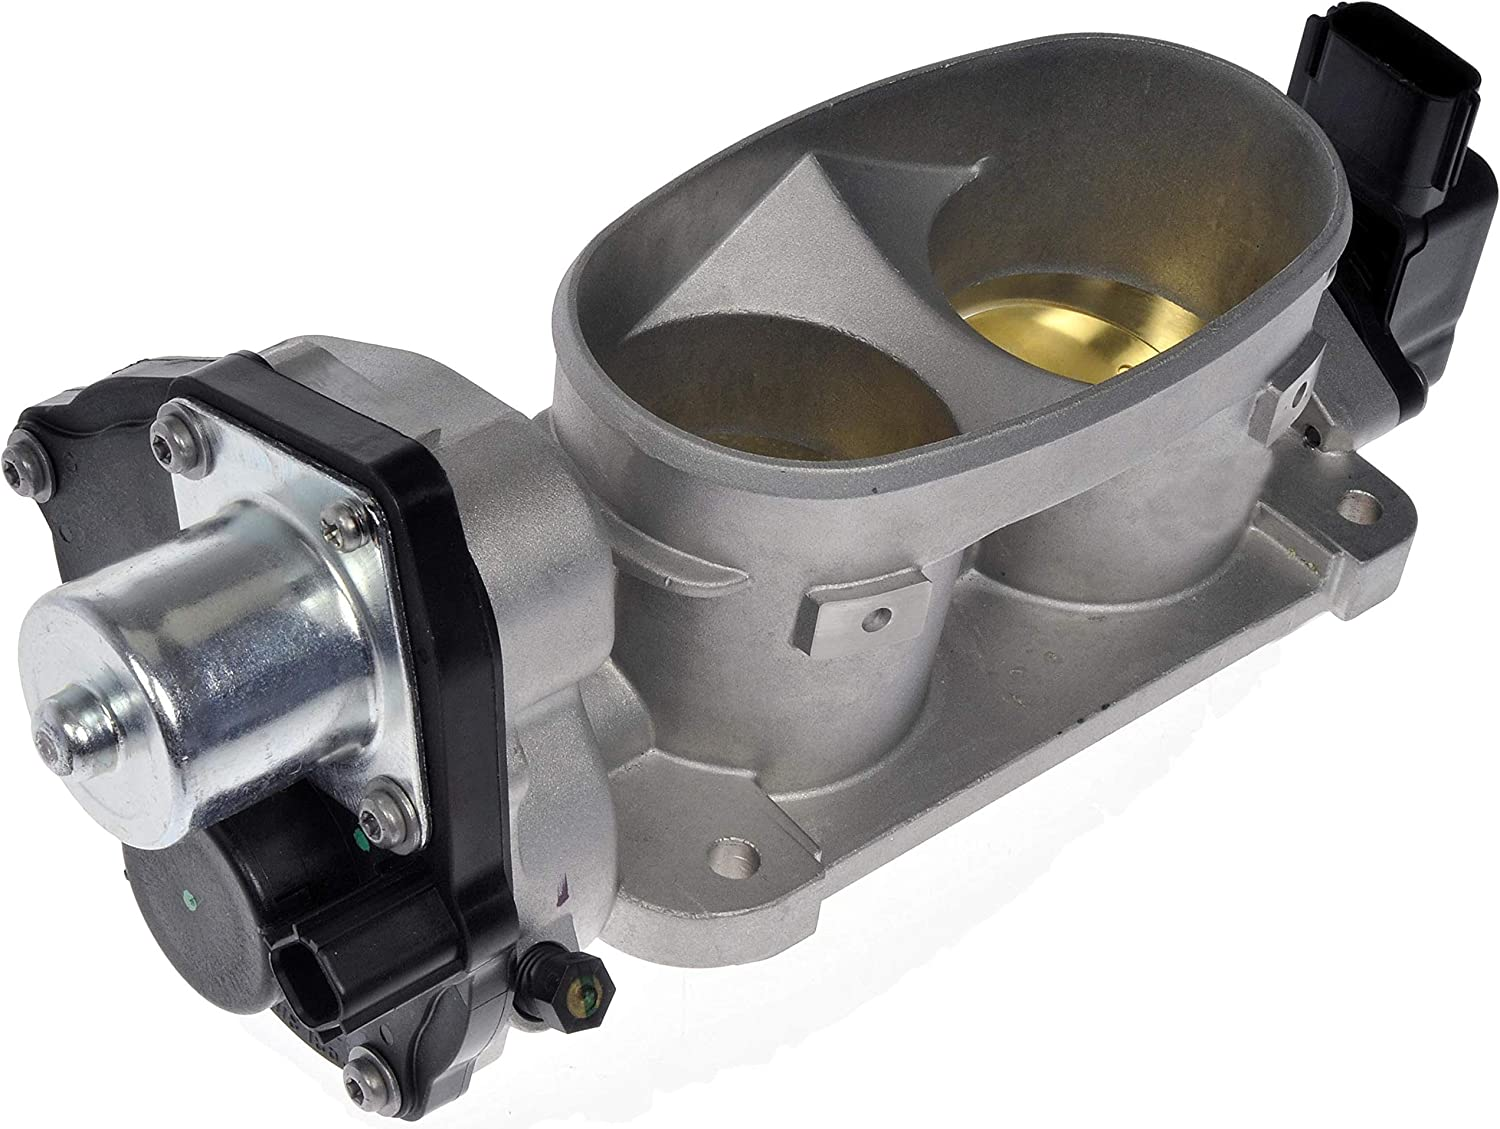 Dorman 977-601 Fuel Injection Throttle Body for Select Ford//Lincoln Models